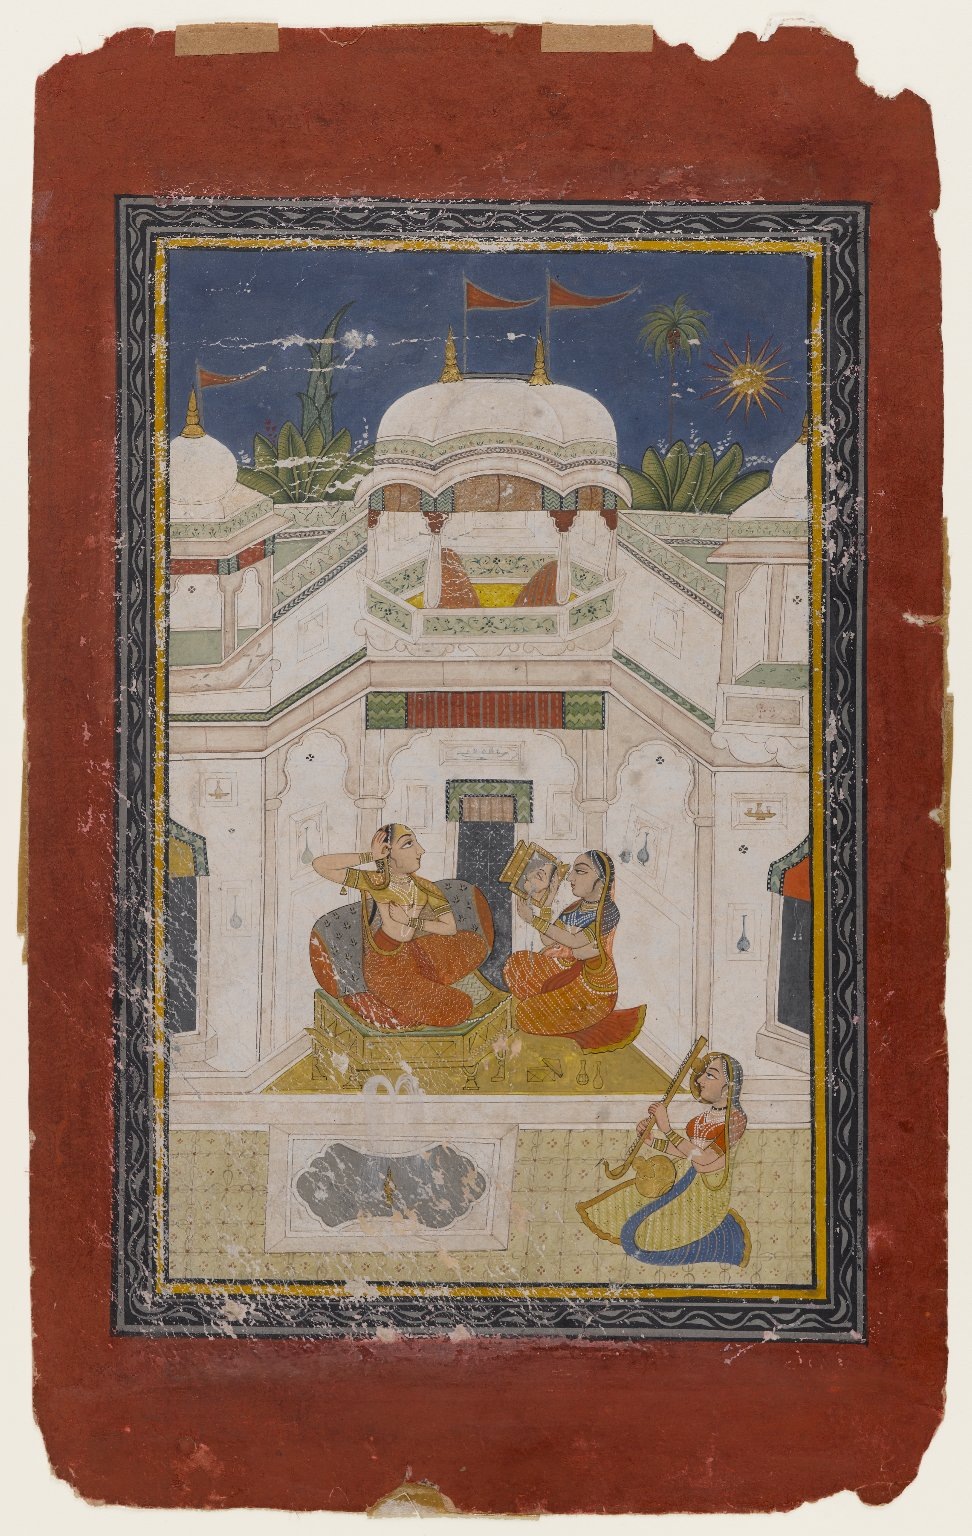 Bilavala Ragini, A Lady Grooming Herself in Preparation for a Romantic Tryst - Miniature Painting Circa 1770-1790